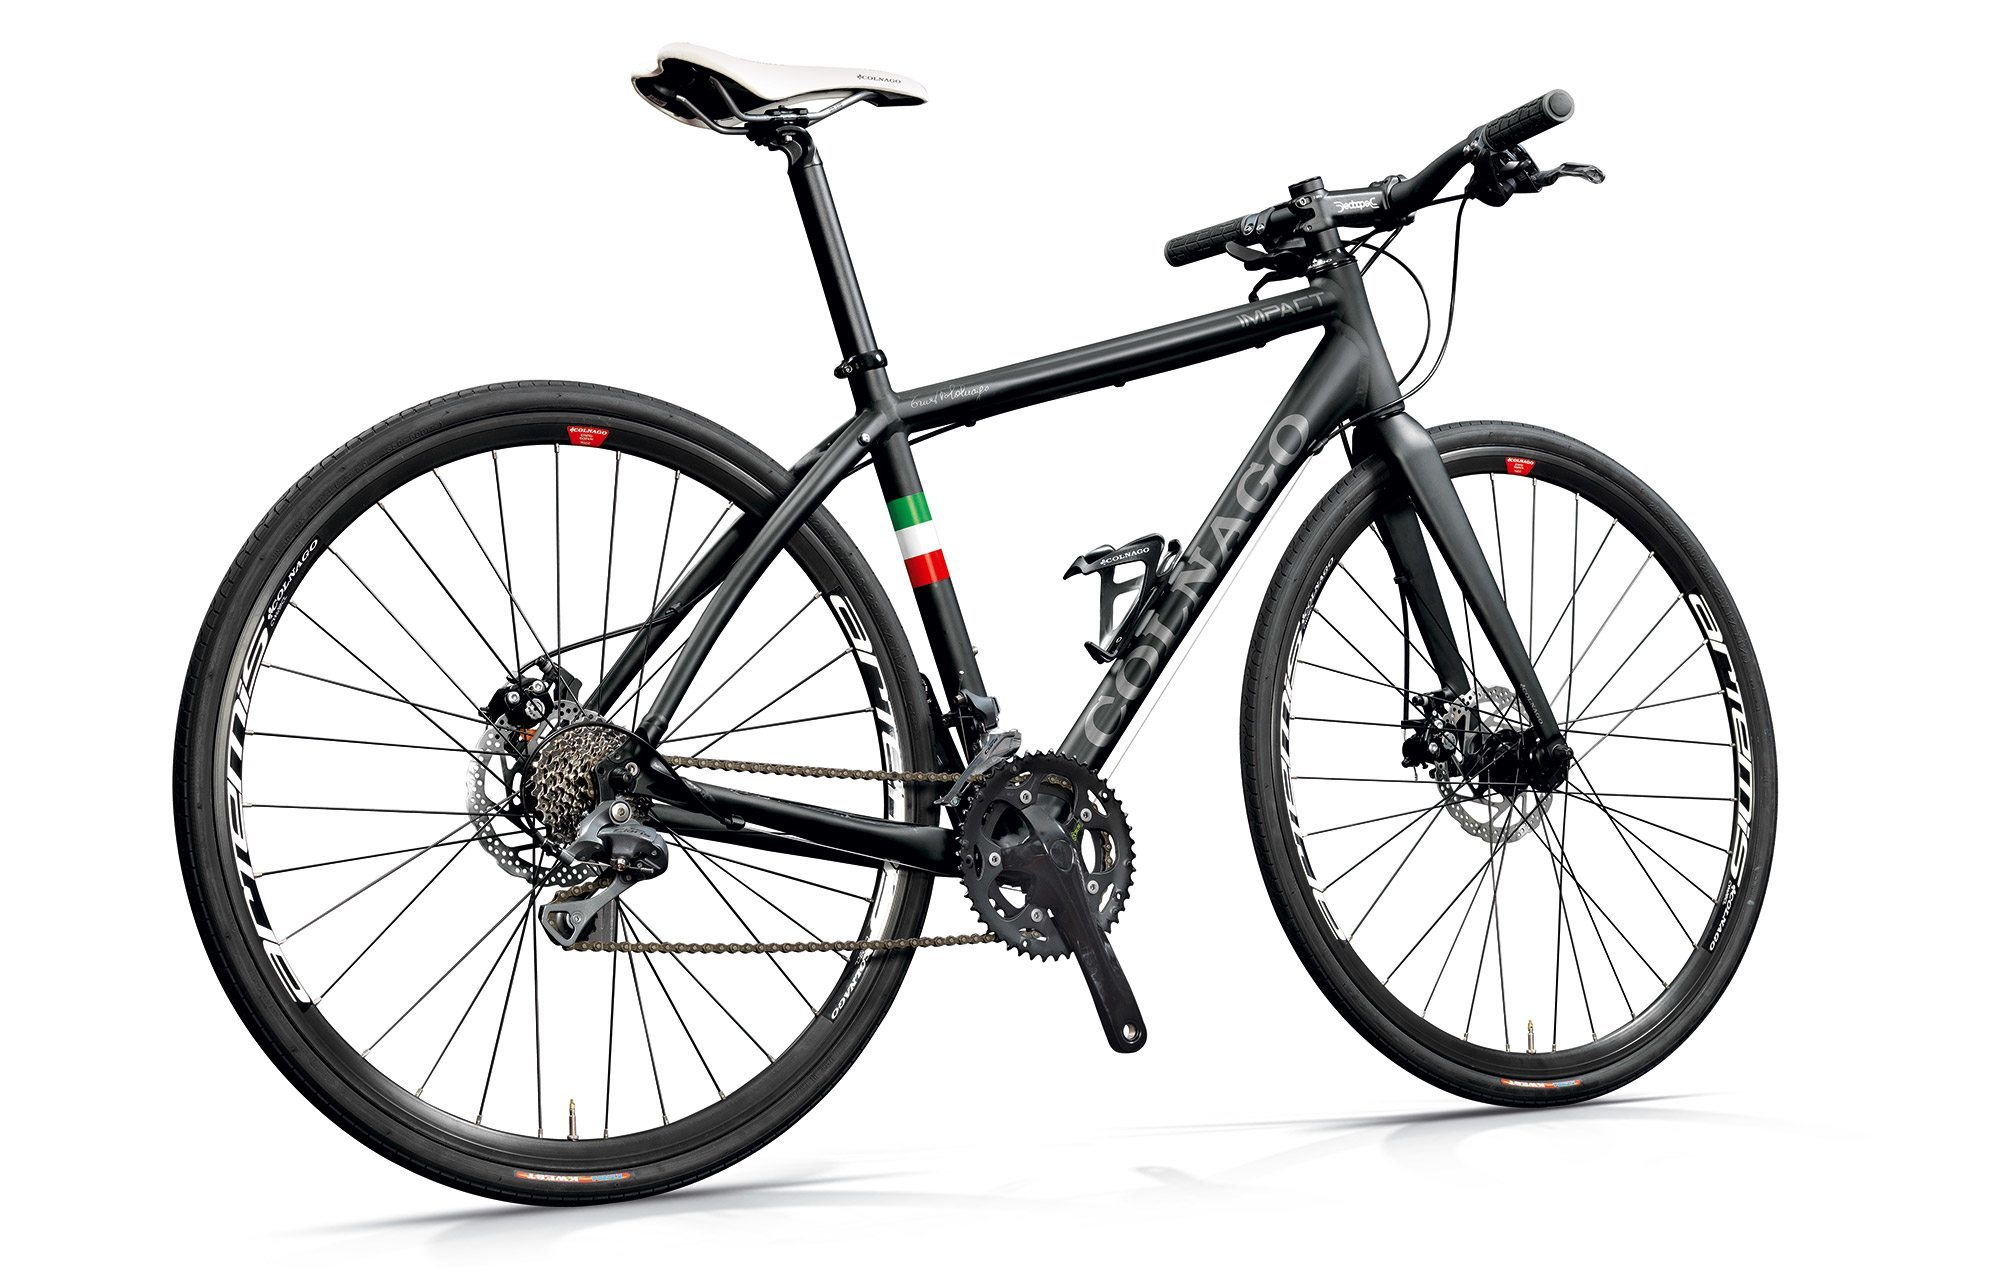 2016 Colnago Impact Bike | R&A Cycles